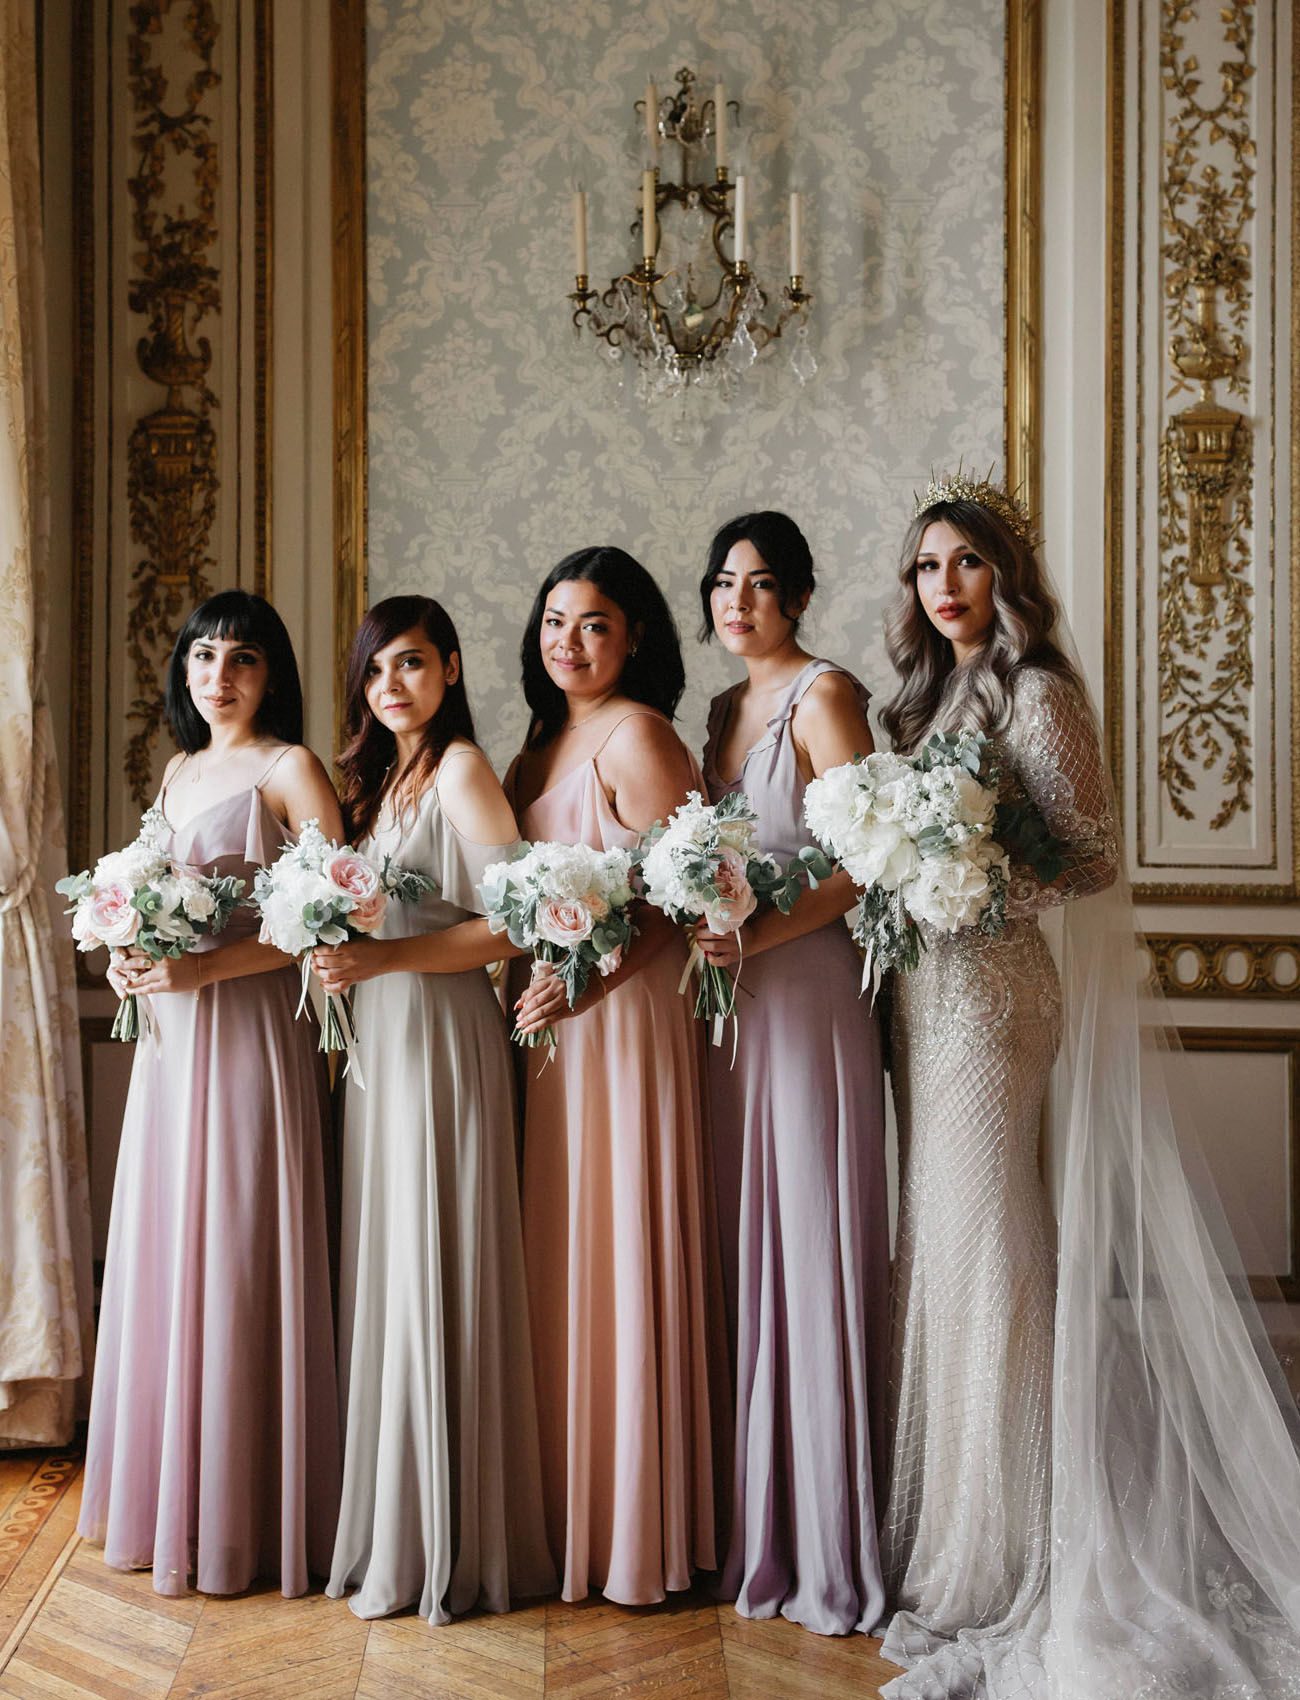 Playing Off The Pastel Hues Featured In Sophia Coppola S Film Bridesmaids All Donned Soft Elegant Colors Marie Antoinette Paris Wedding